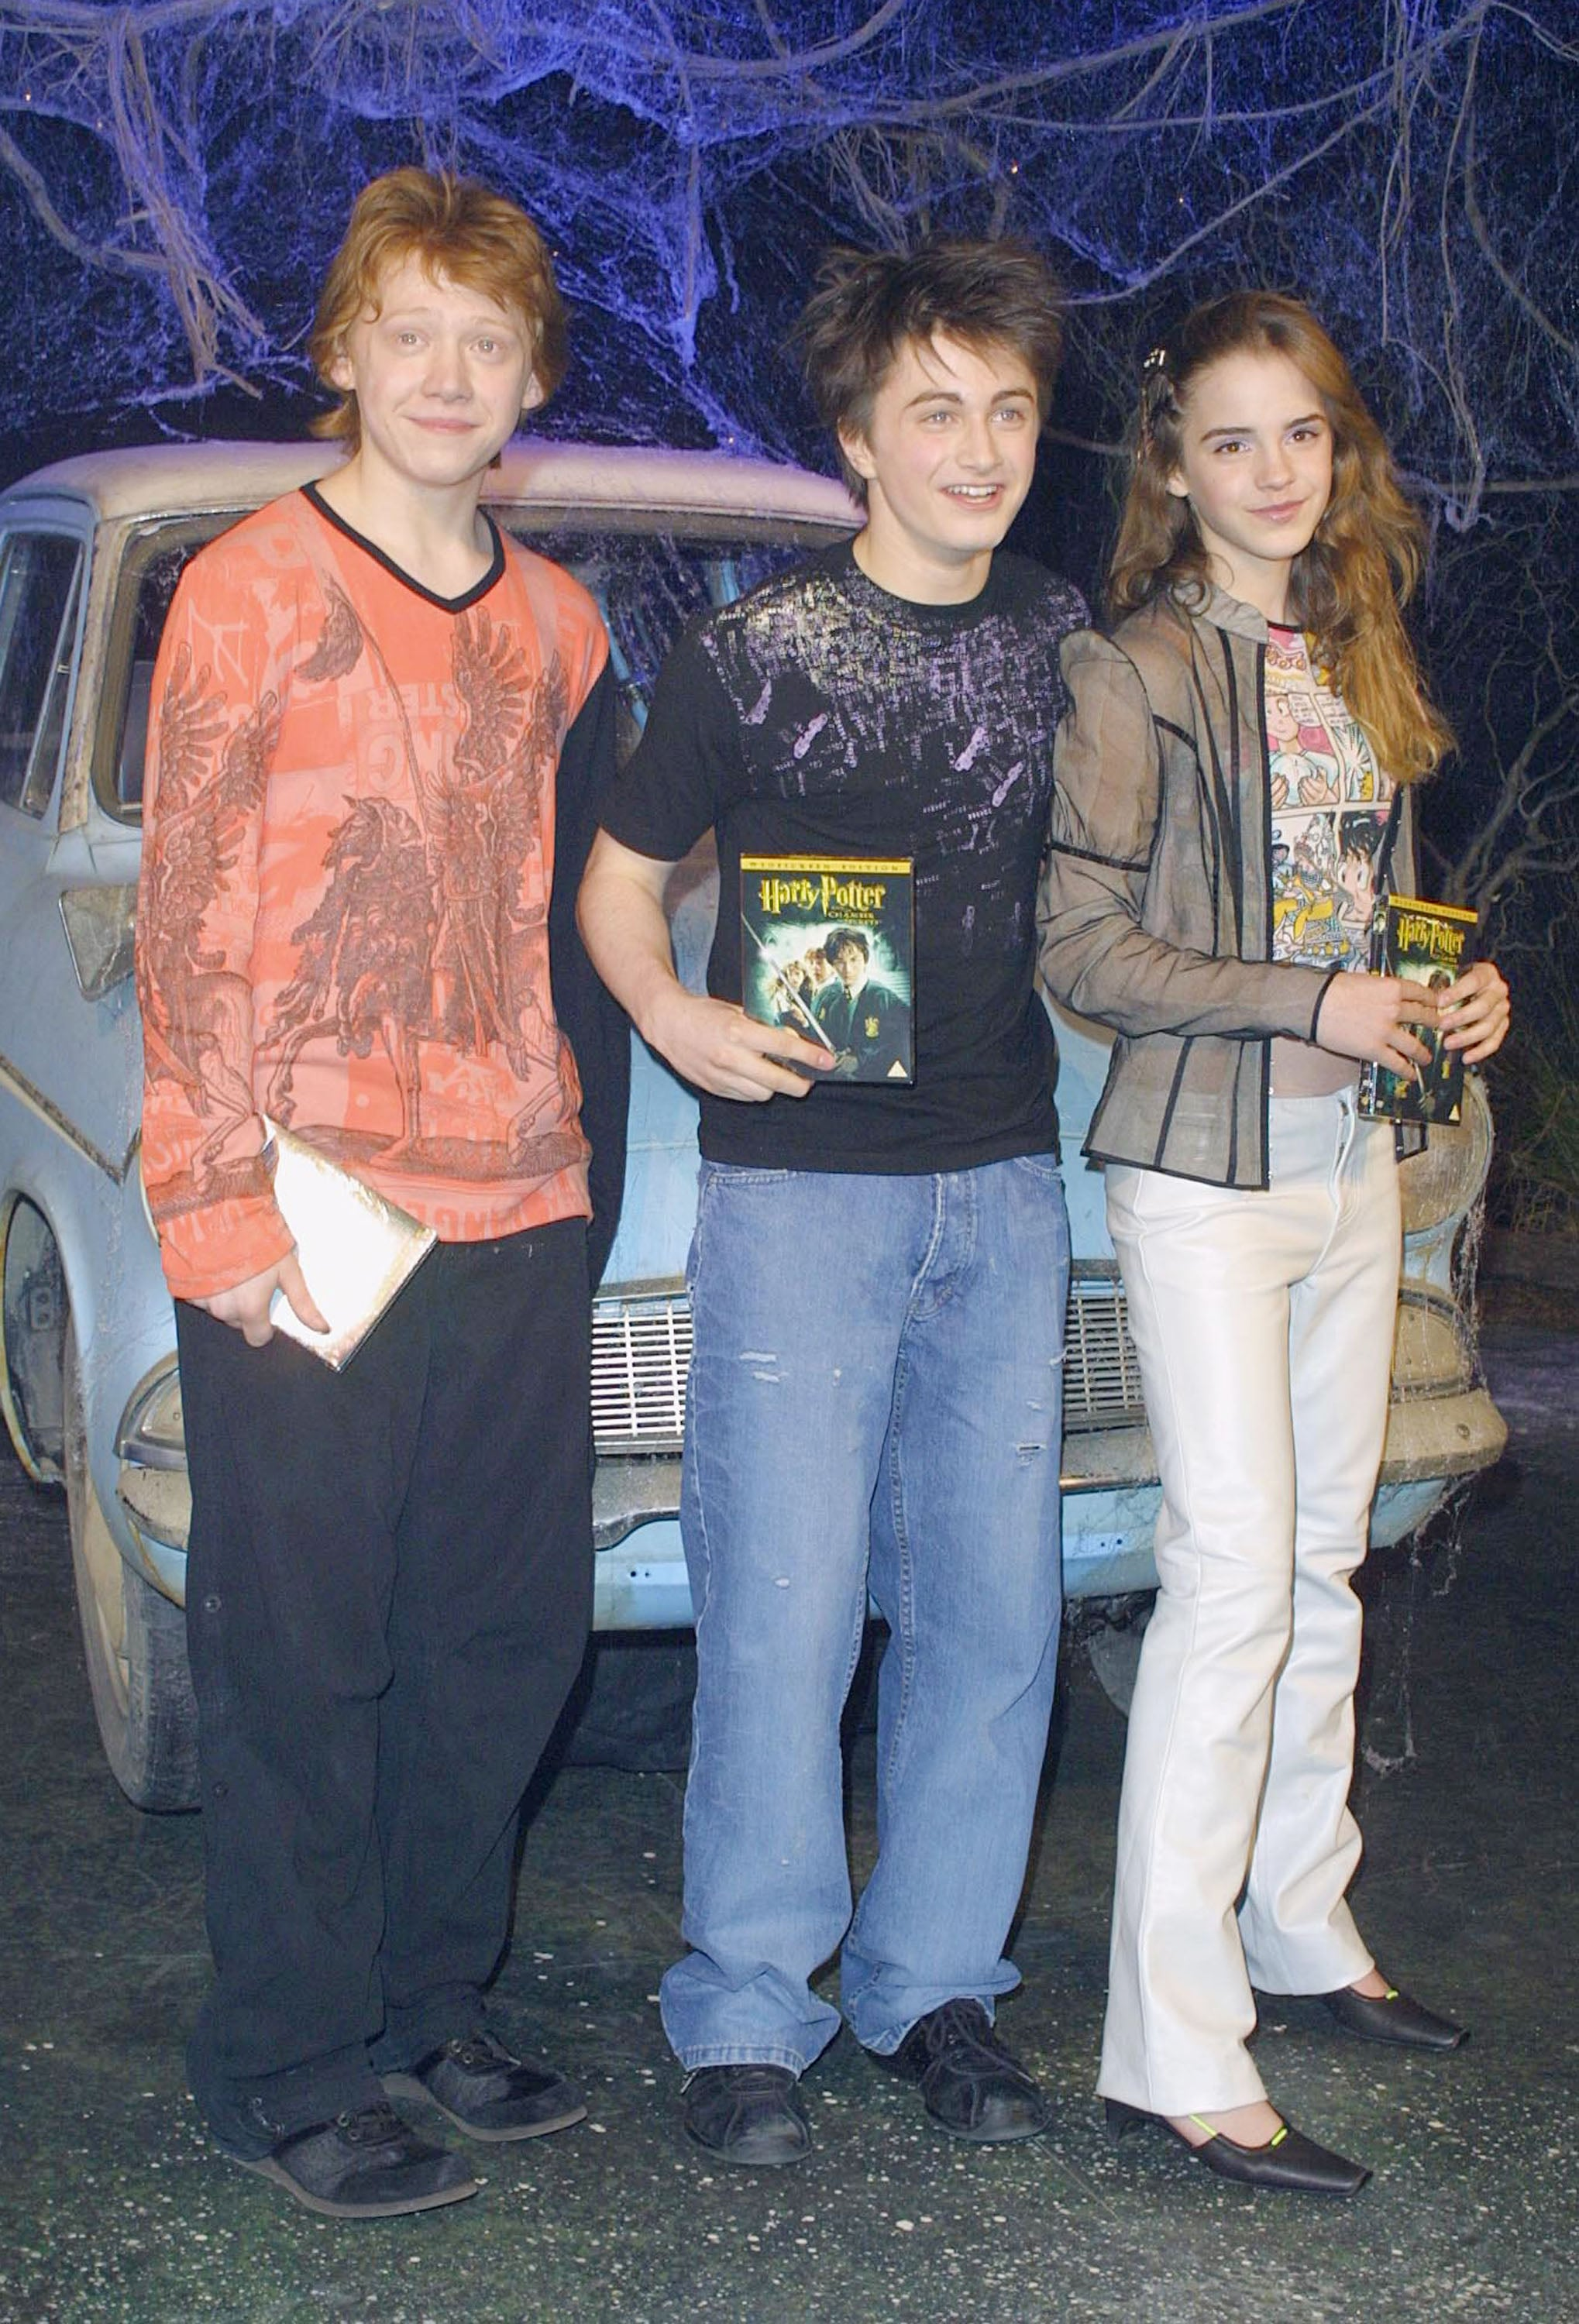 And Then 2003 Brought Us These Looks